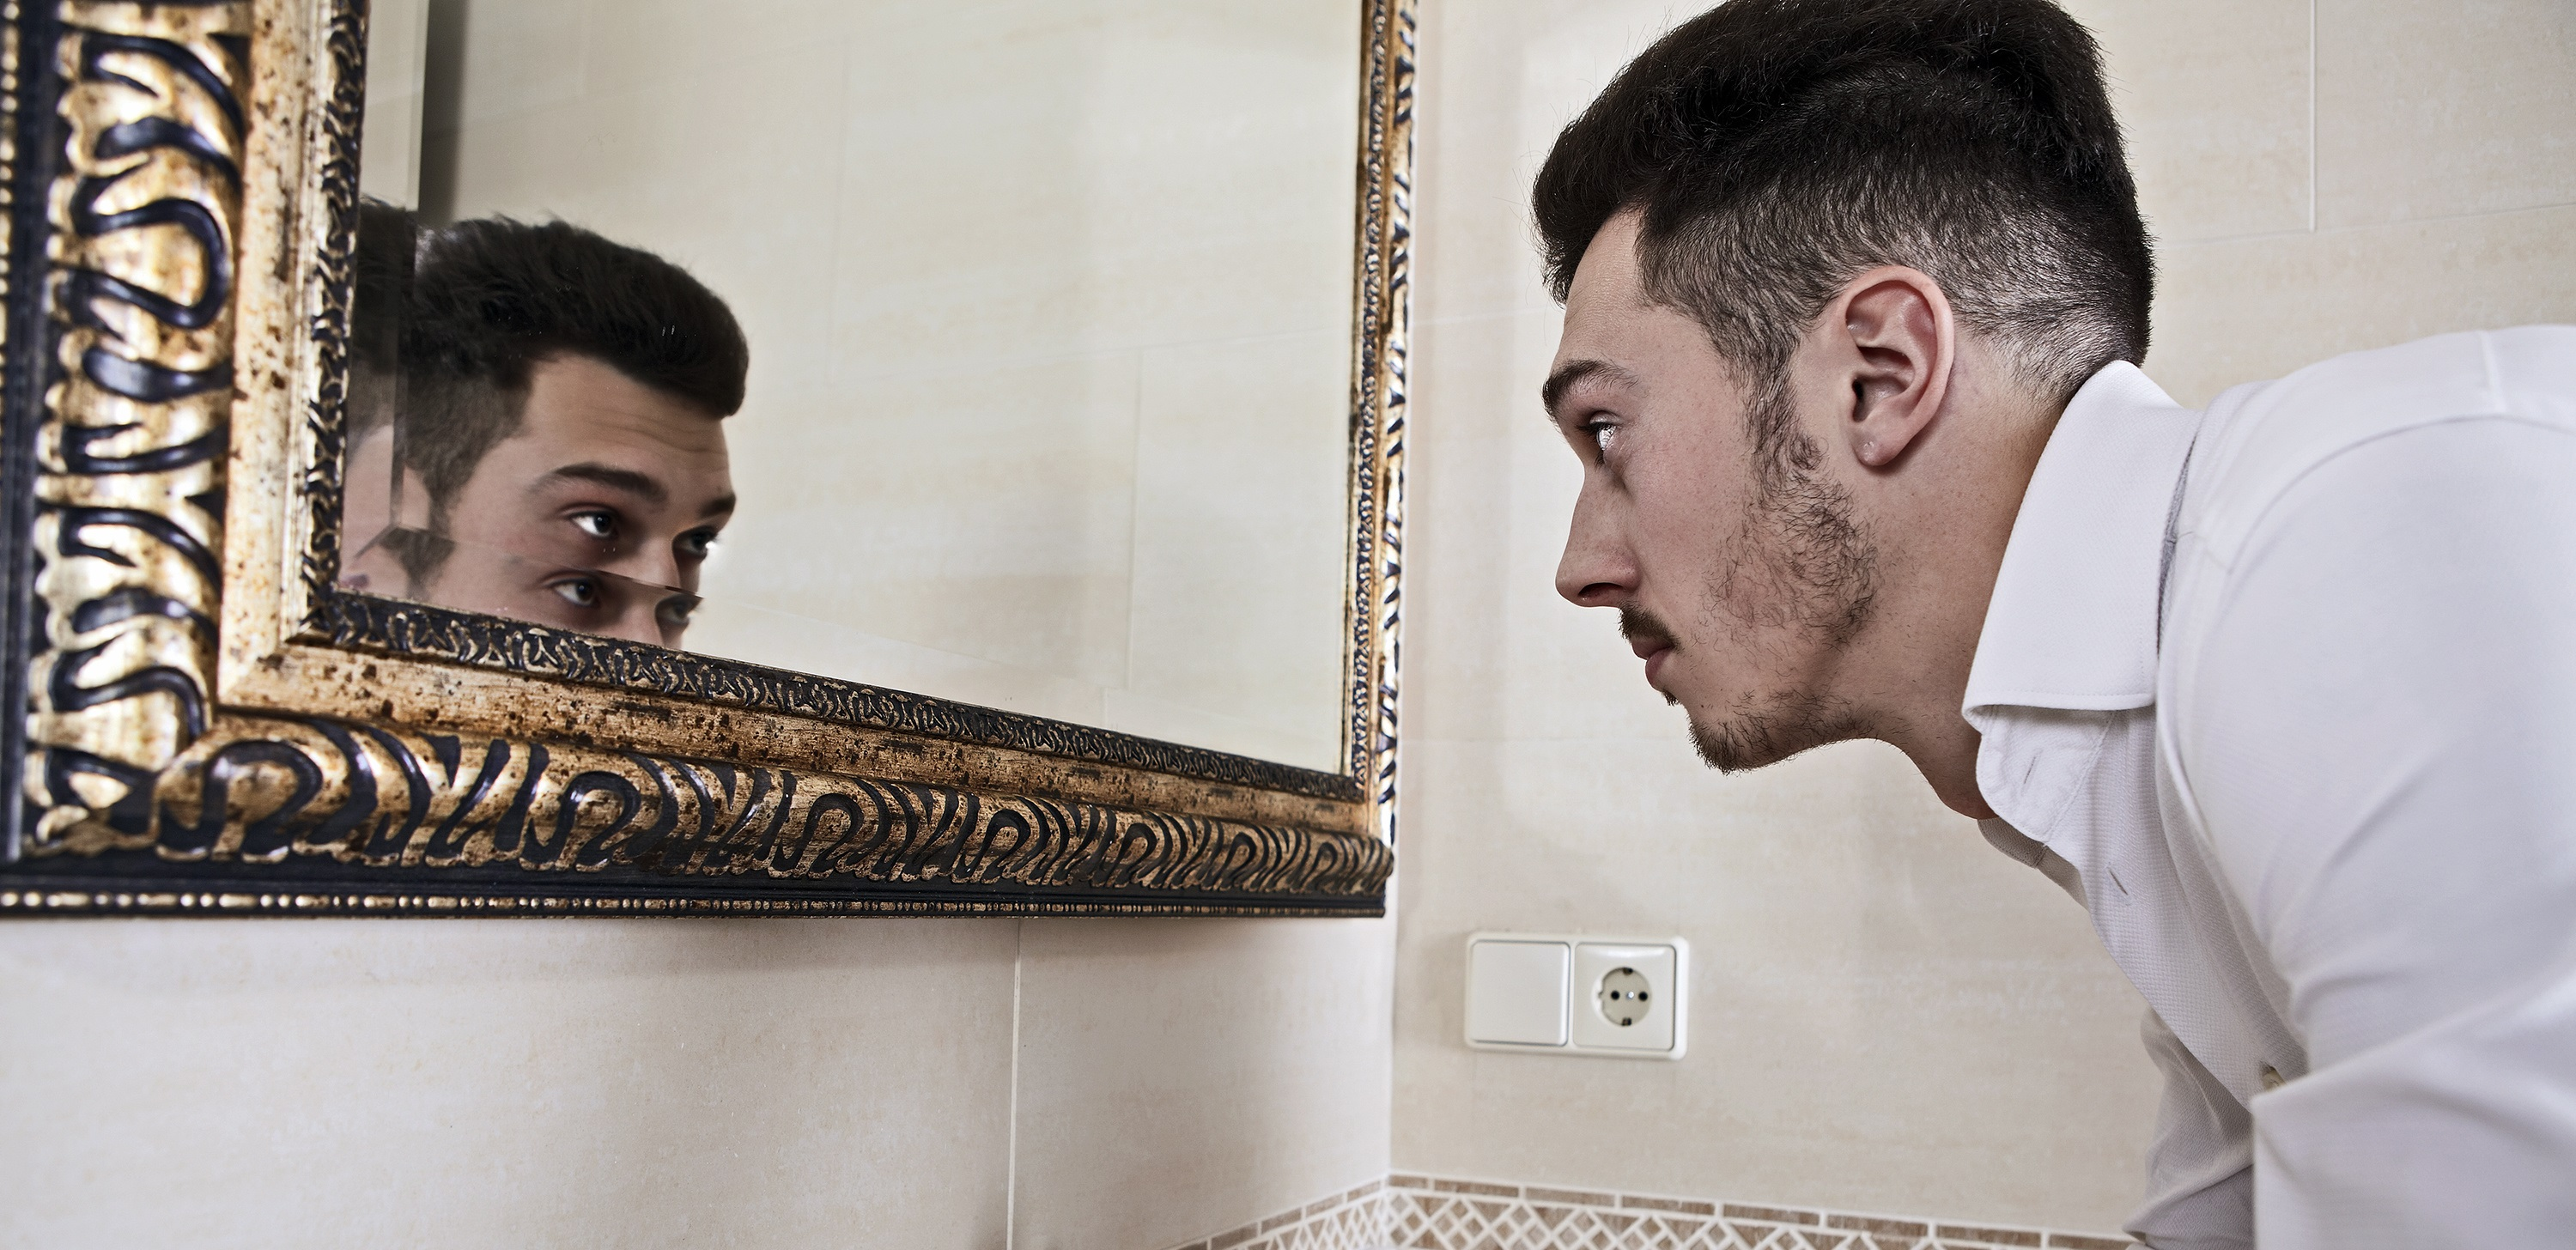 Man takes a look at himself in the mirror.